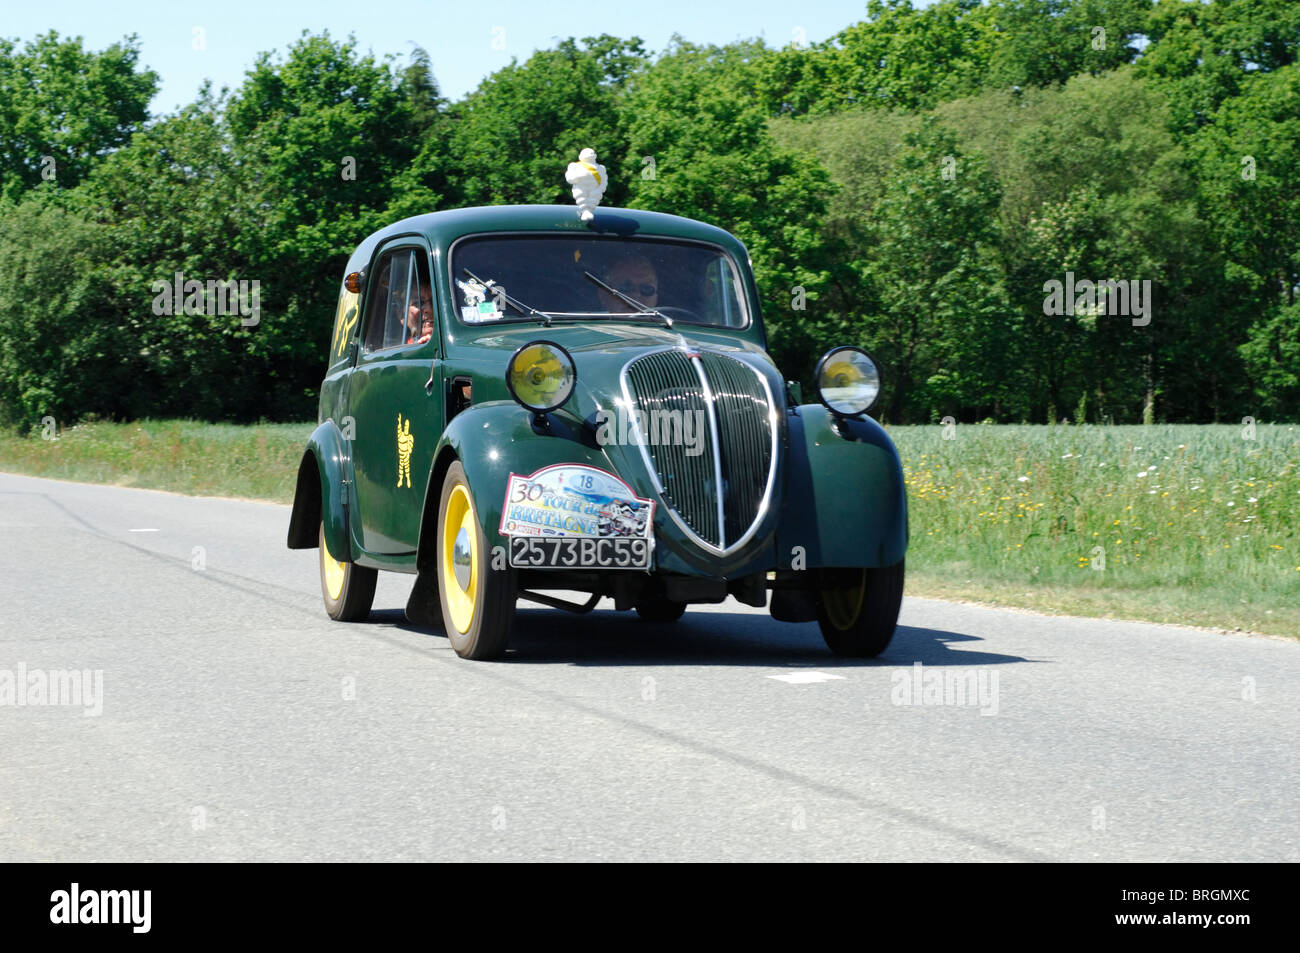 simca 5 fourgonnette 1948 in the tour de bretagne classic car rally stock photo royalty free. Black Bedroom Furniture Sets. Home Design Ideas